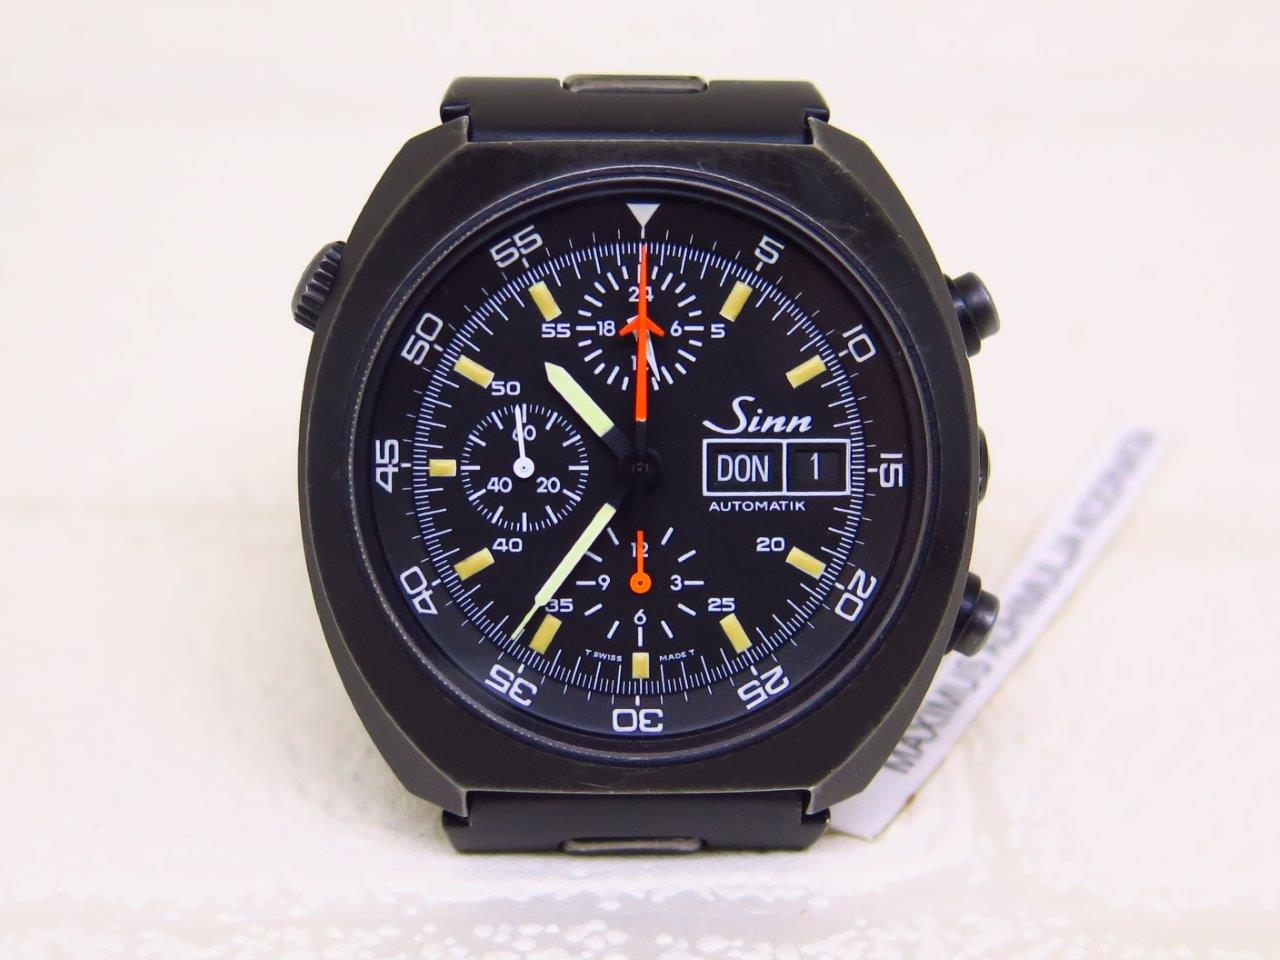 SINN DAY DATE CHRONOGRAPH REF 142 BLACK PVD - AUTOMATIC LEMANIA 5100